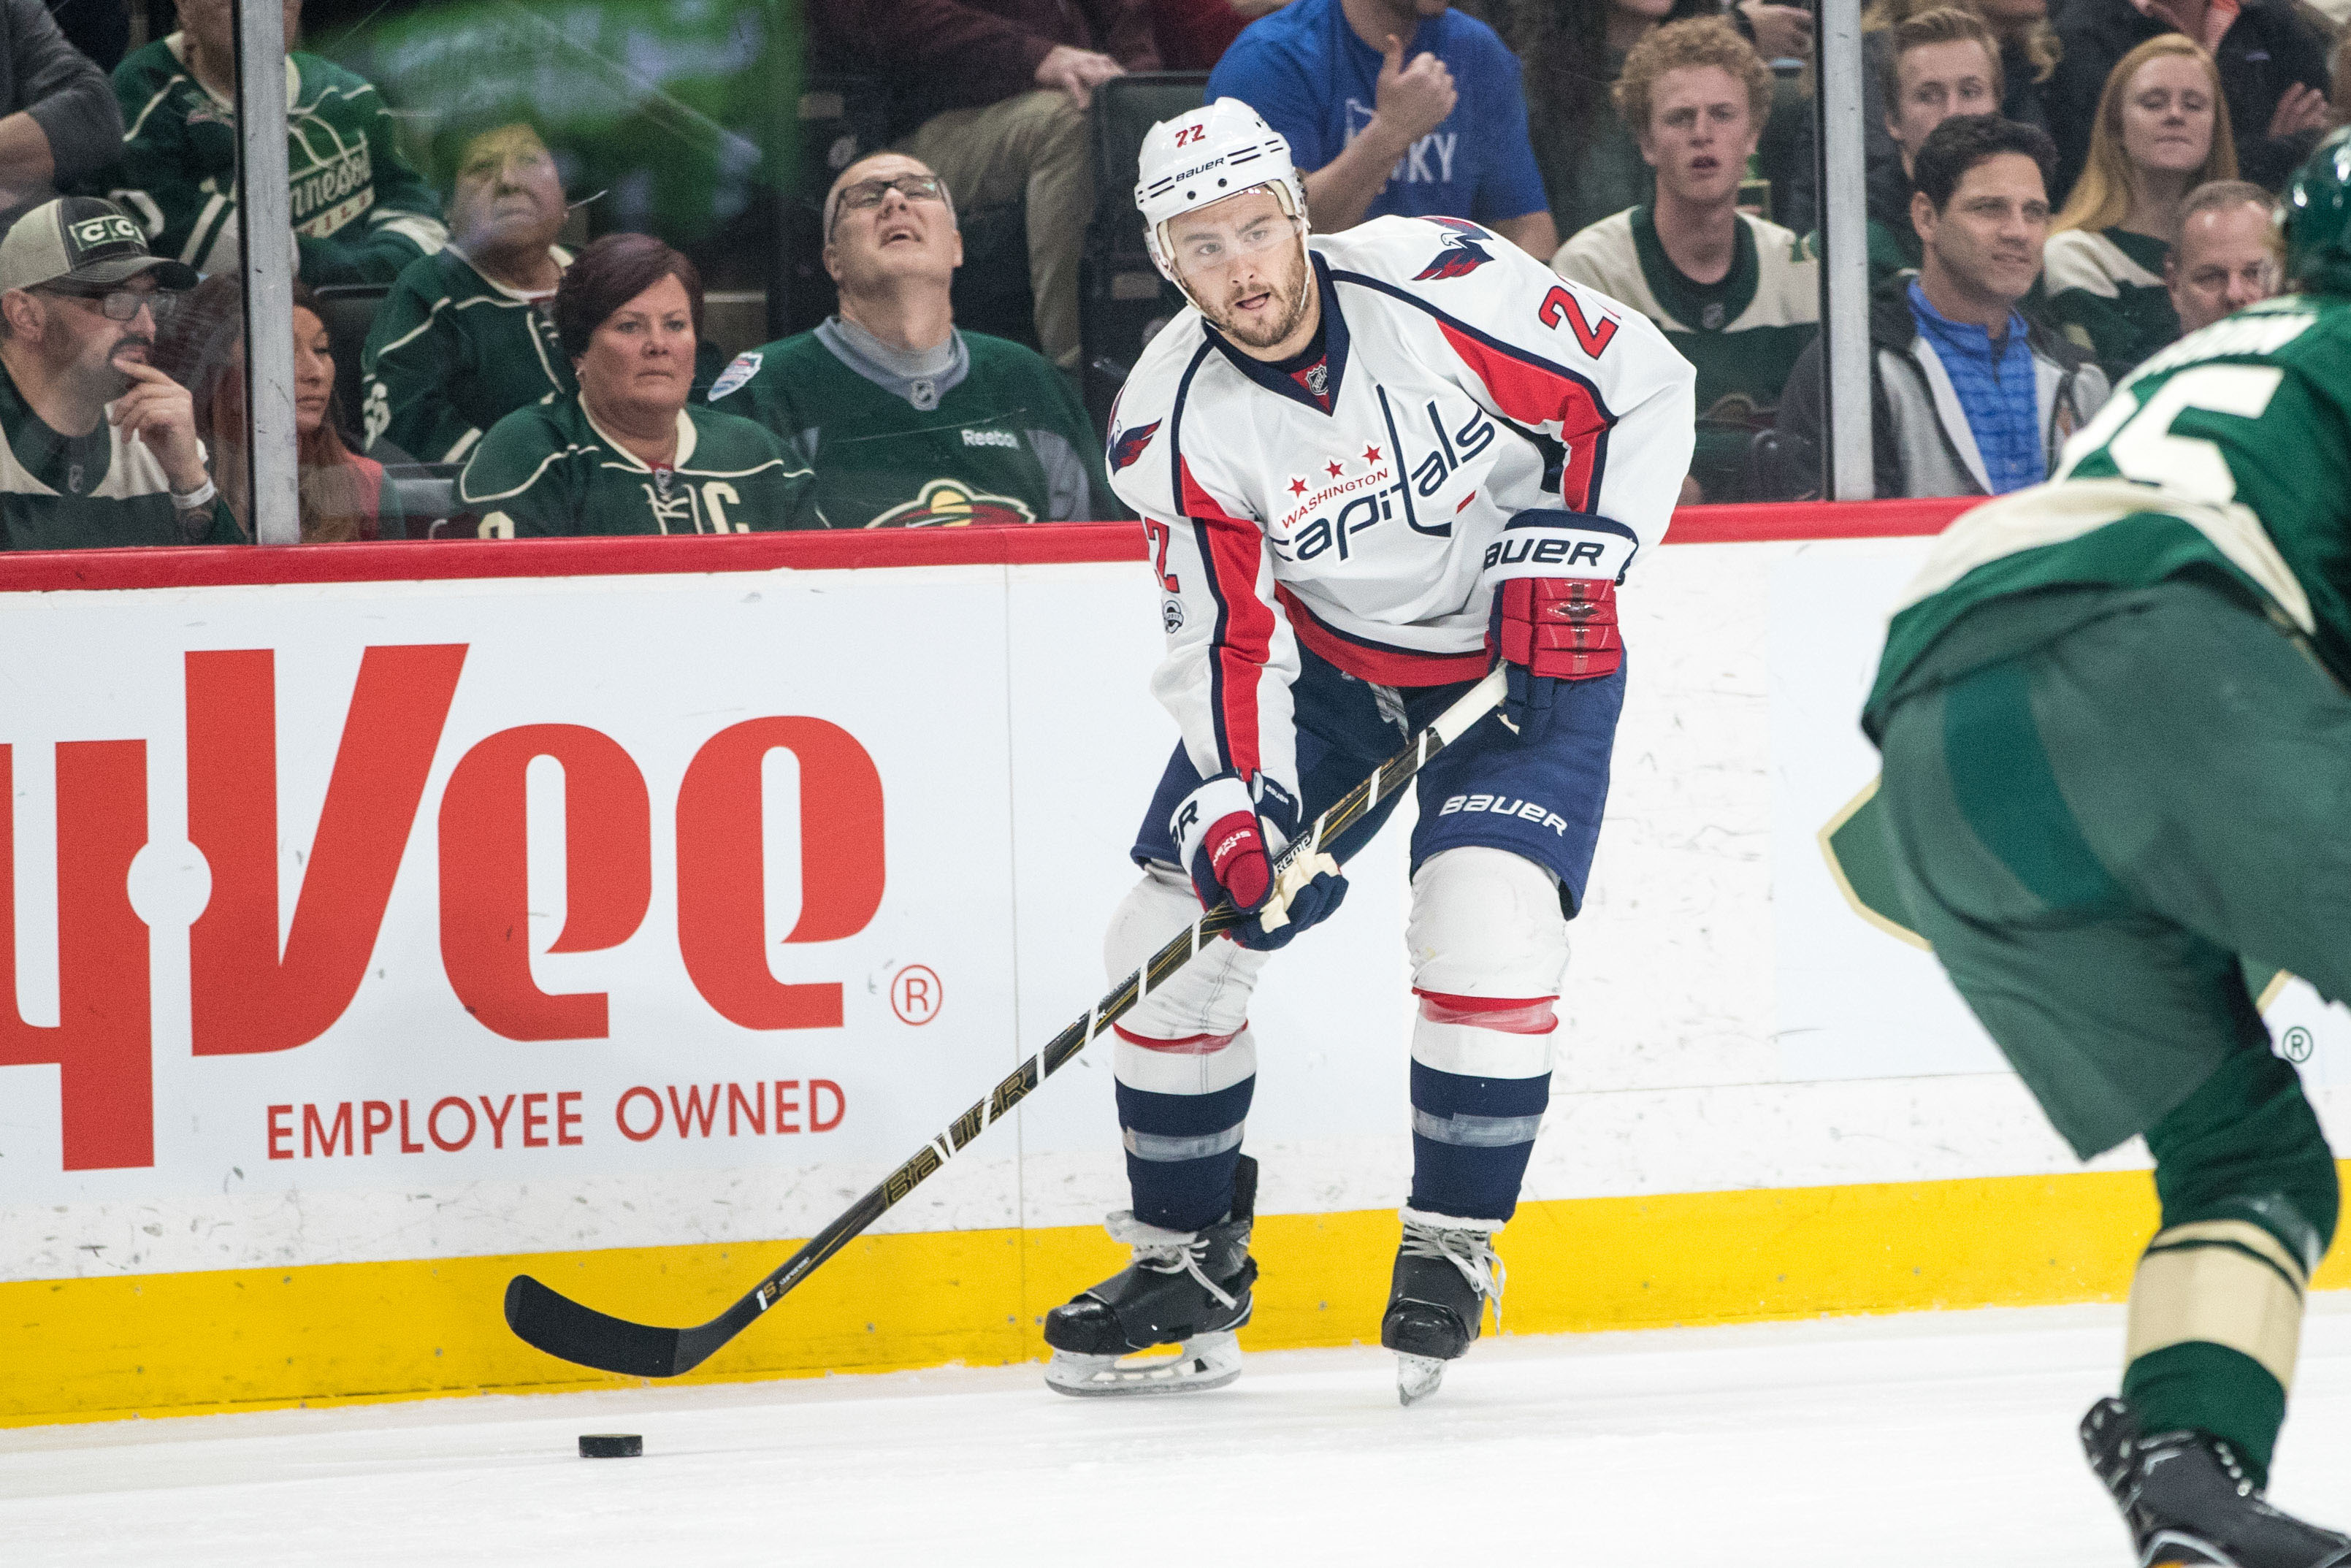 9989157-nhl-washington-capitals-at-minnesota-wild